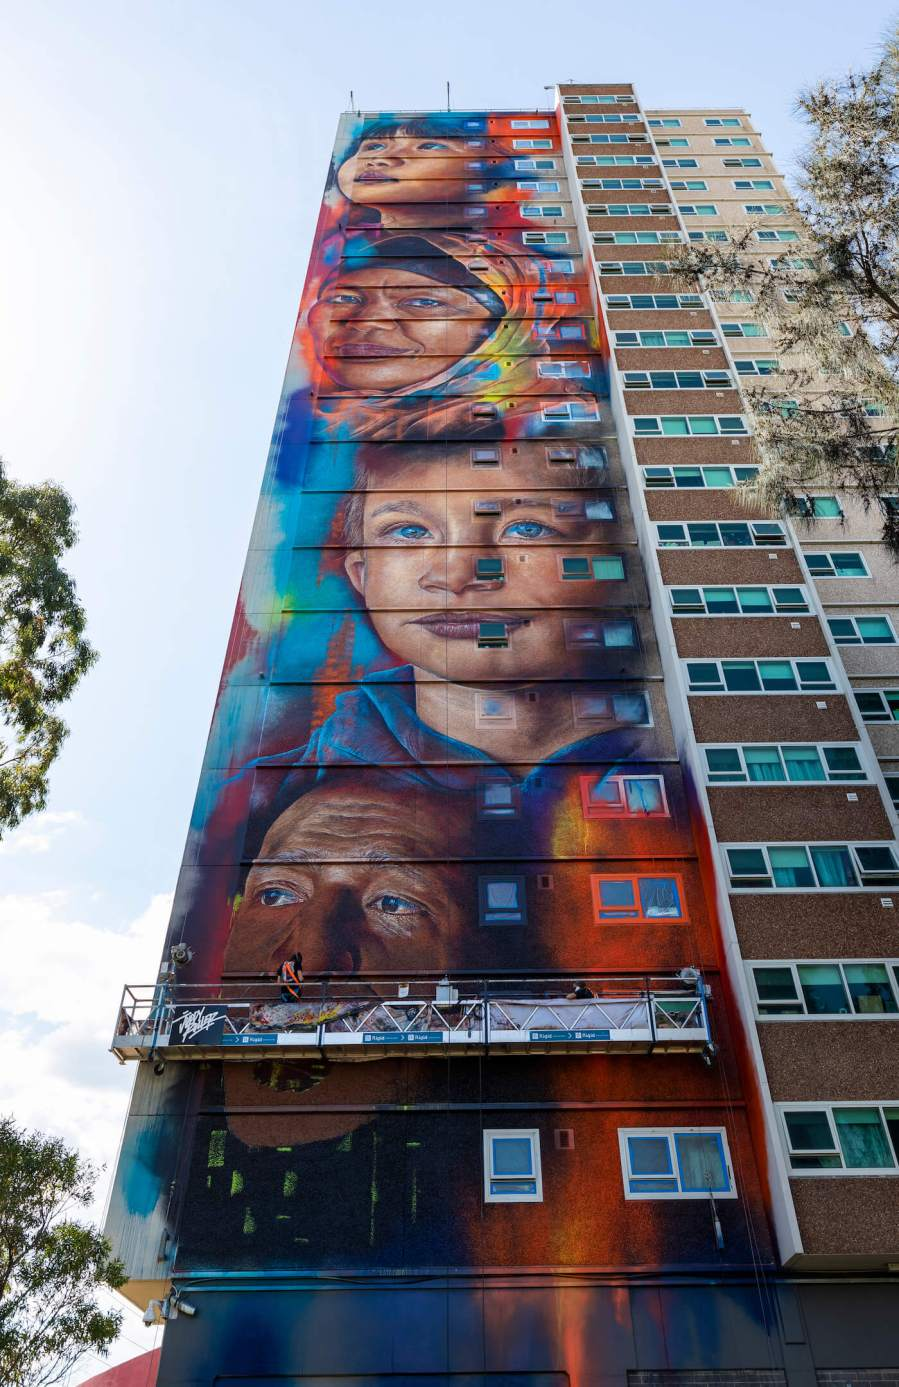 Adnate-street-art-australia-juddy-roller-Nicole-Reed-Photography-4